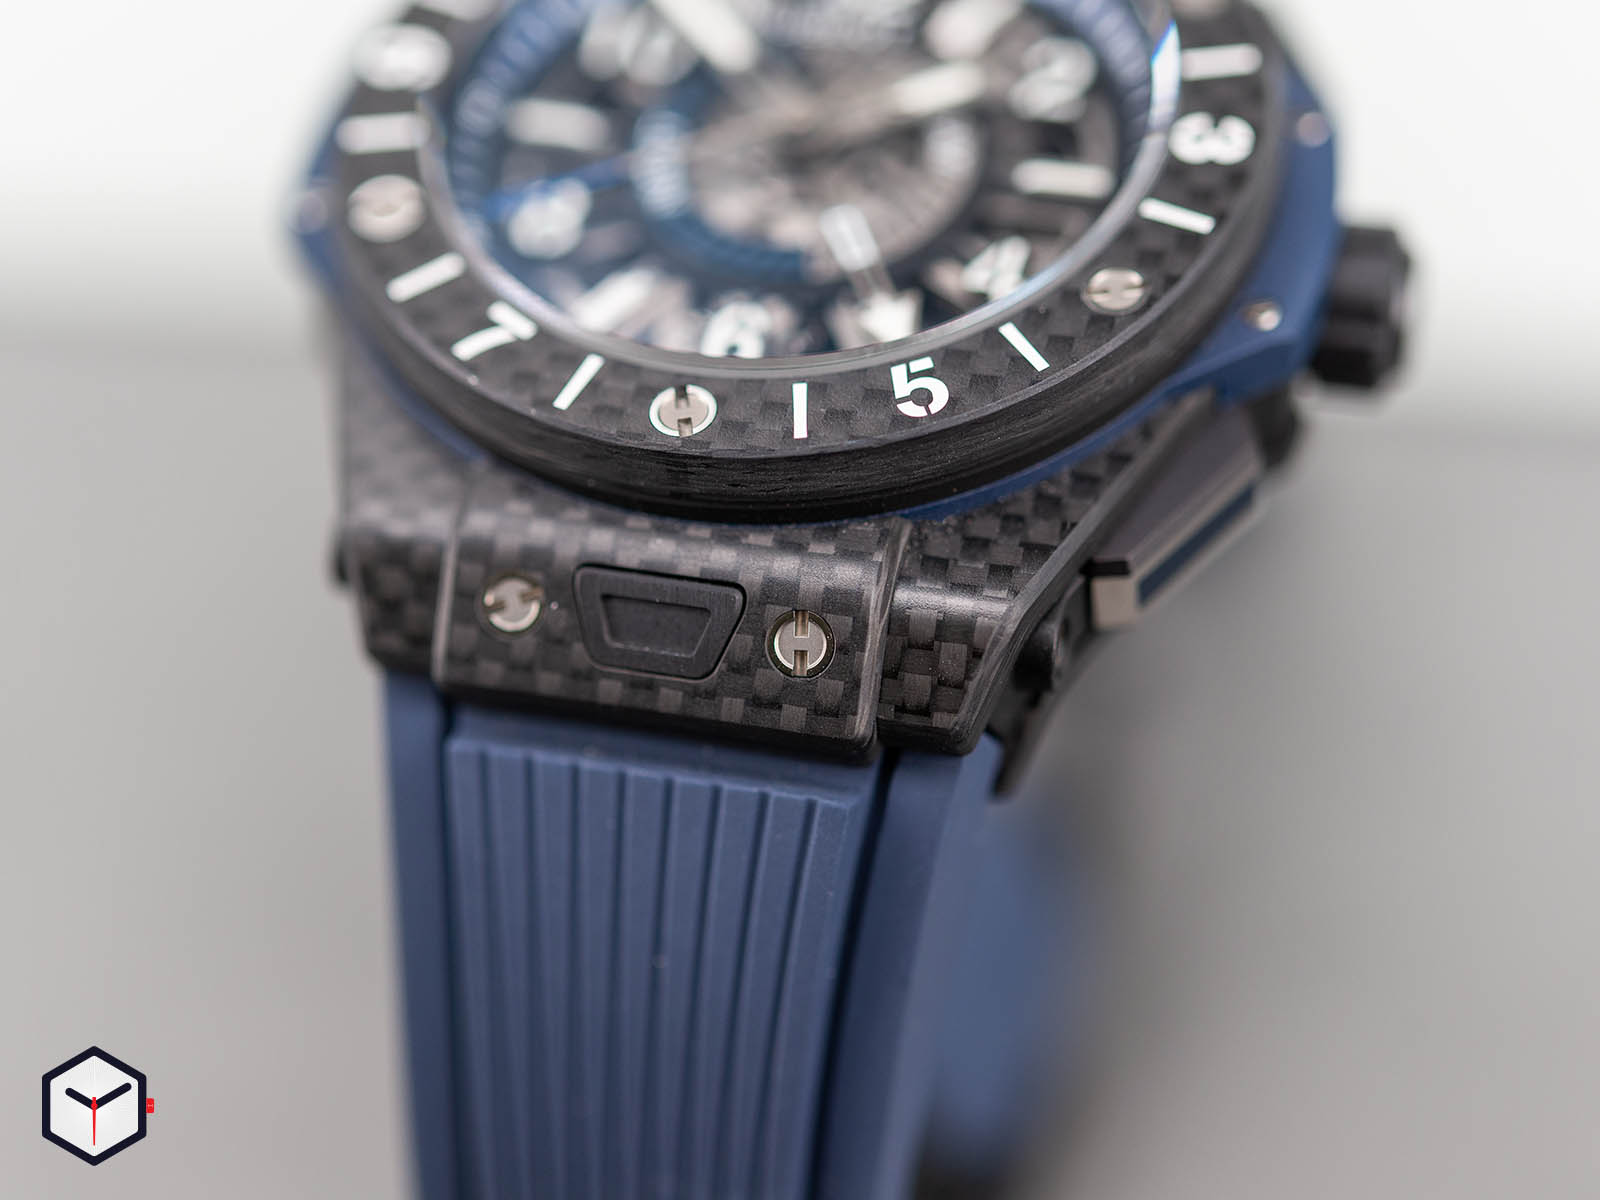 471-qx-7127-rx-hublot-big-bang-unico-gmt-carbon-5.jpg